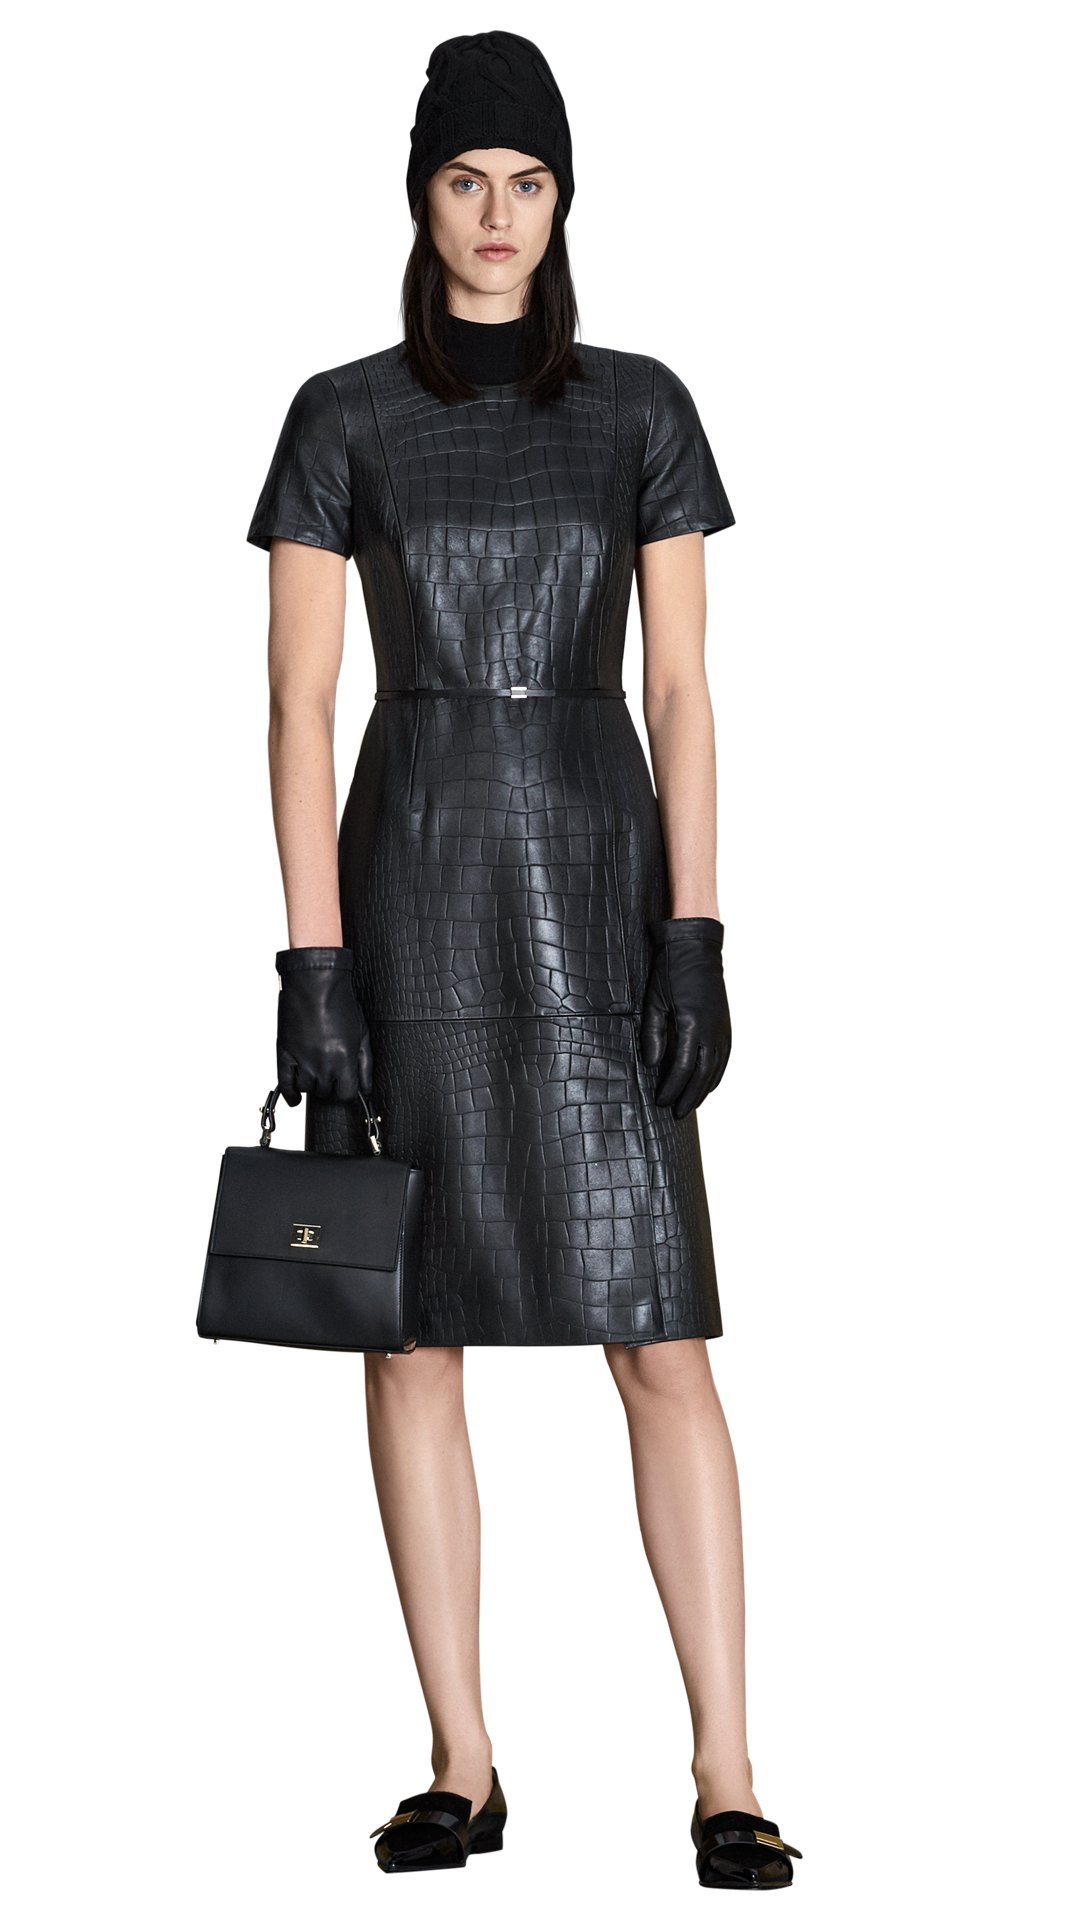 Black dress with black shoes - Black Dress Black Bag Black Hat And Black Shoes By Boss